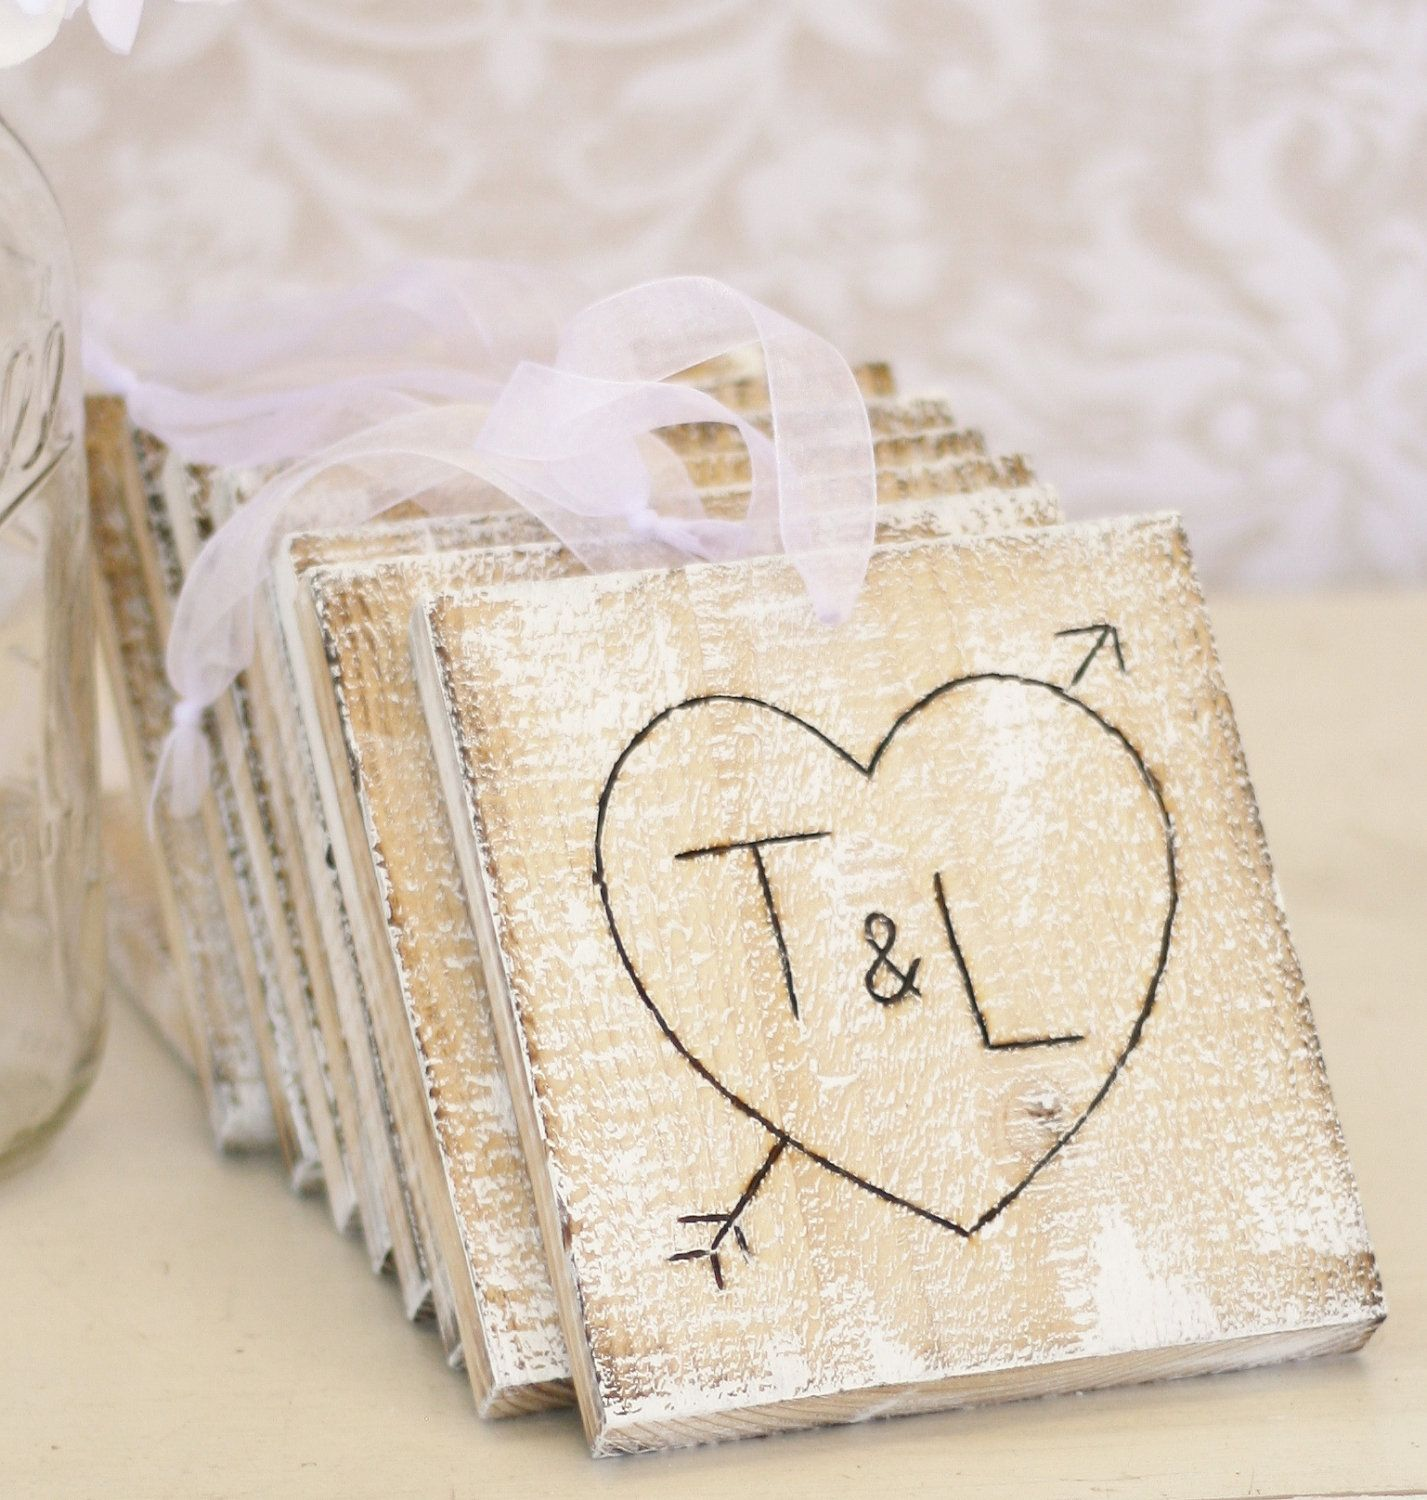 Image detail for -Personalized Wedding Centerpiece Charms Rustic ...